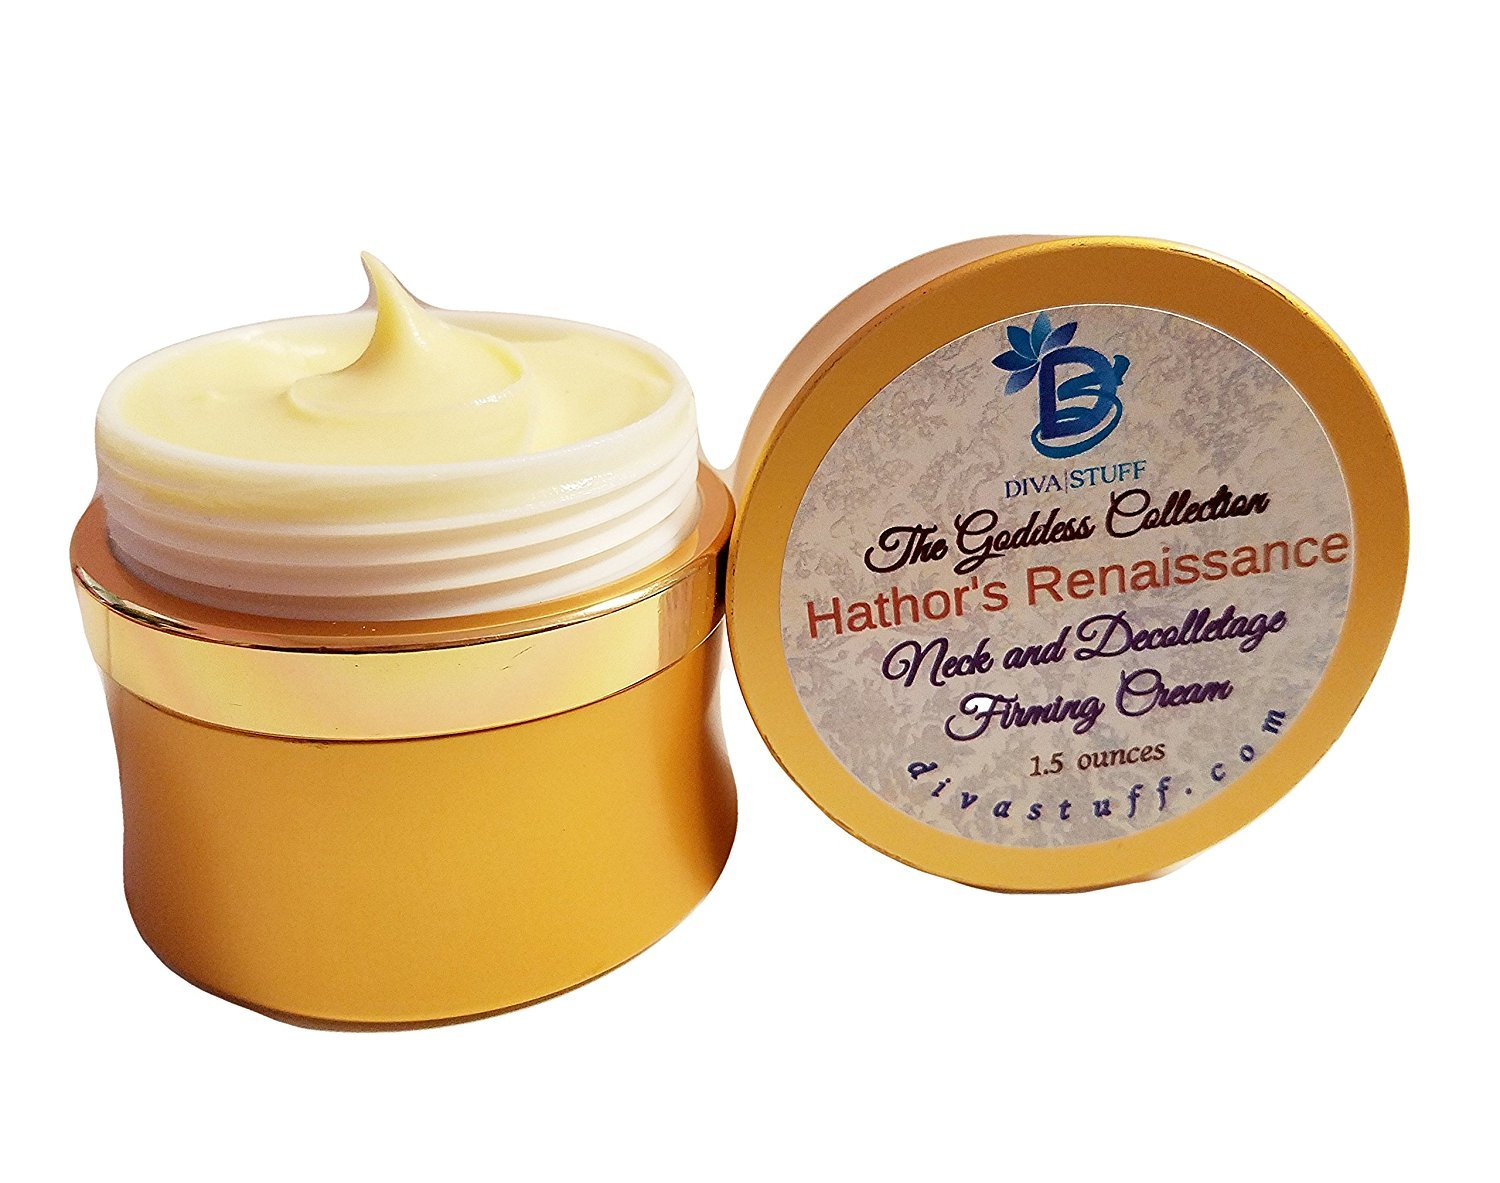 Hathor's Renaissance, Neck and Decolletage Firming Cream, By Diva Stuff The Goddess Collection Hathor' s Renaissance